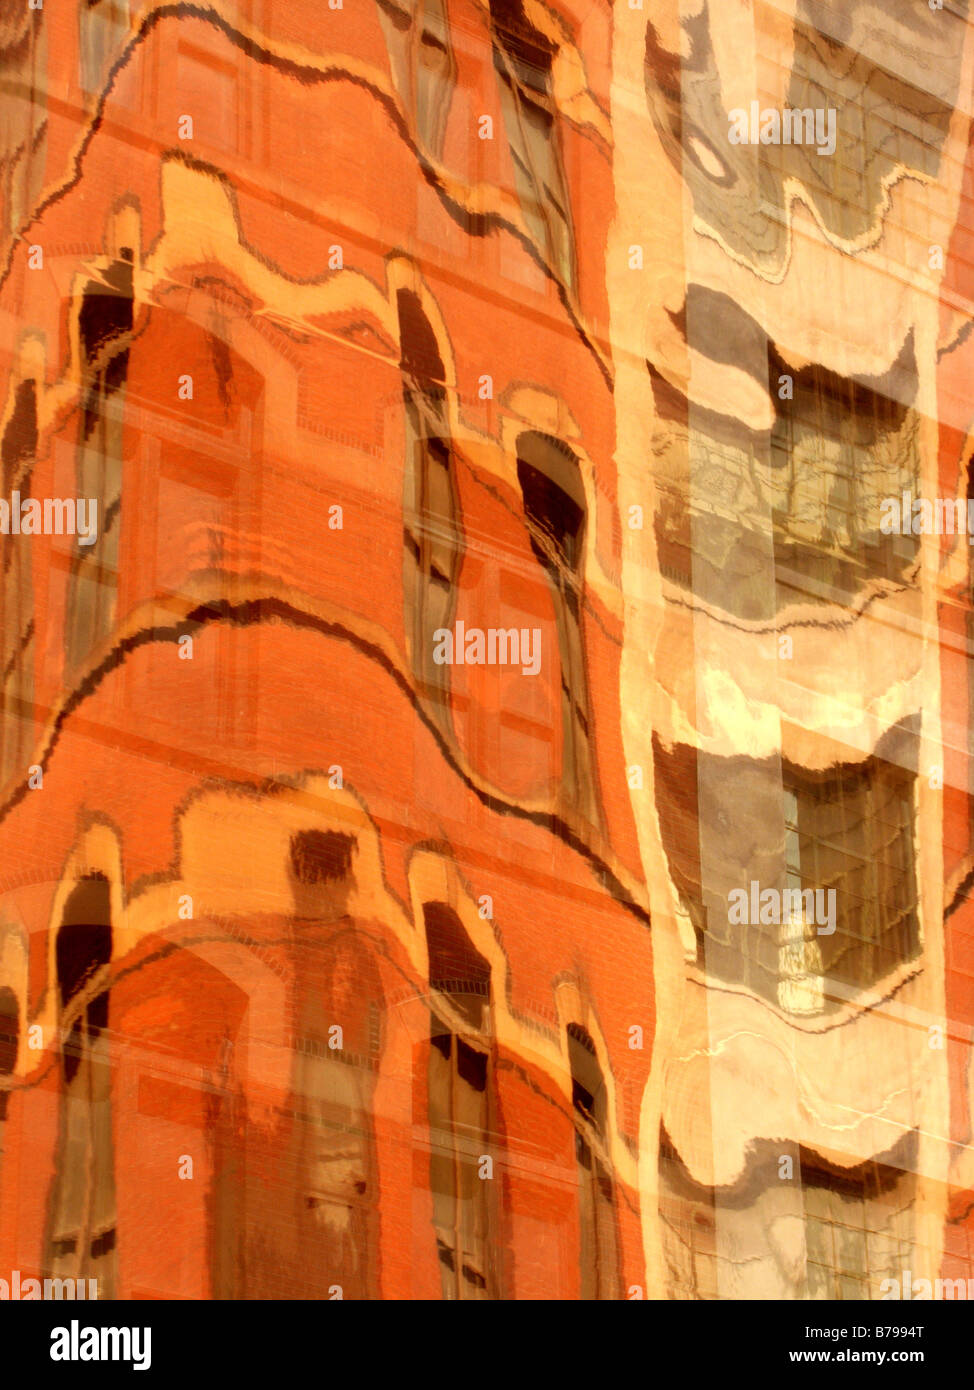 Abstract reflections of buildings - Stock Image